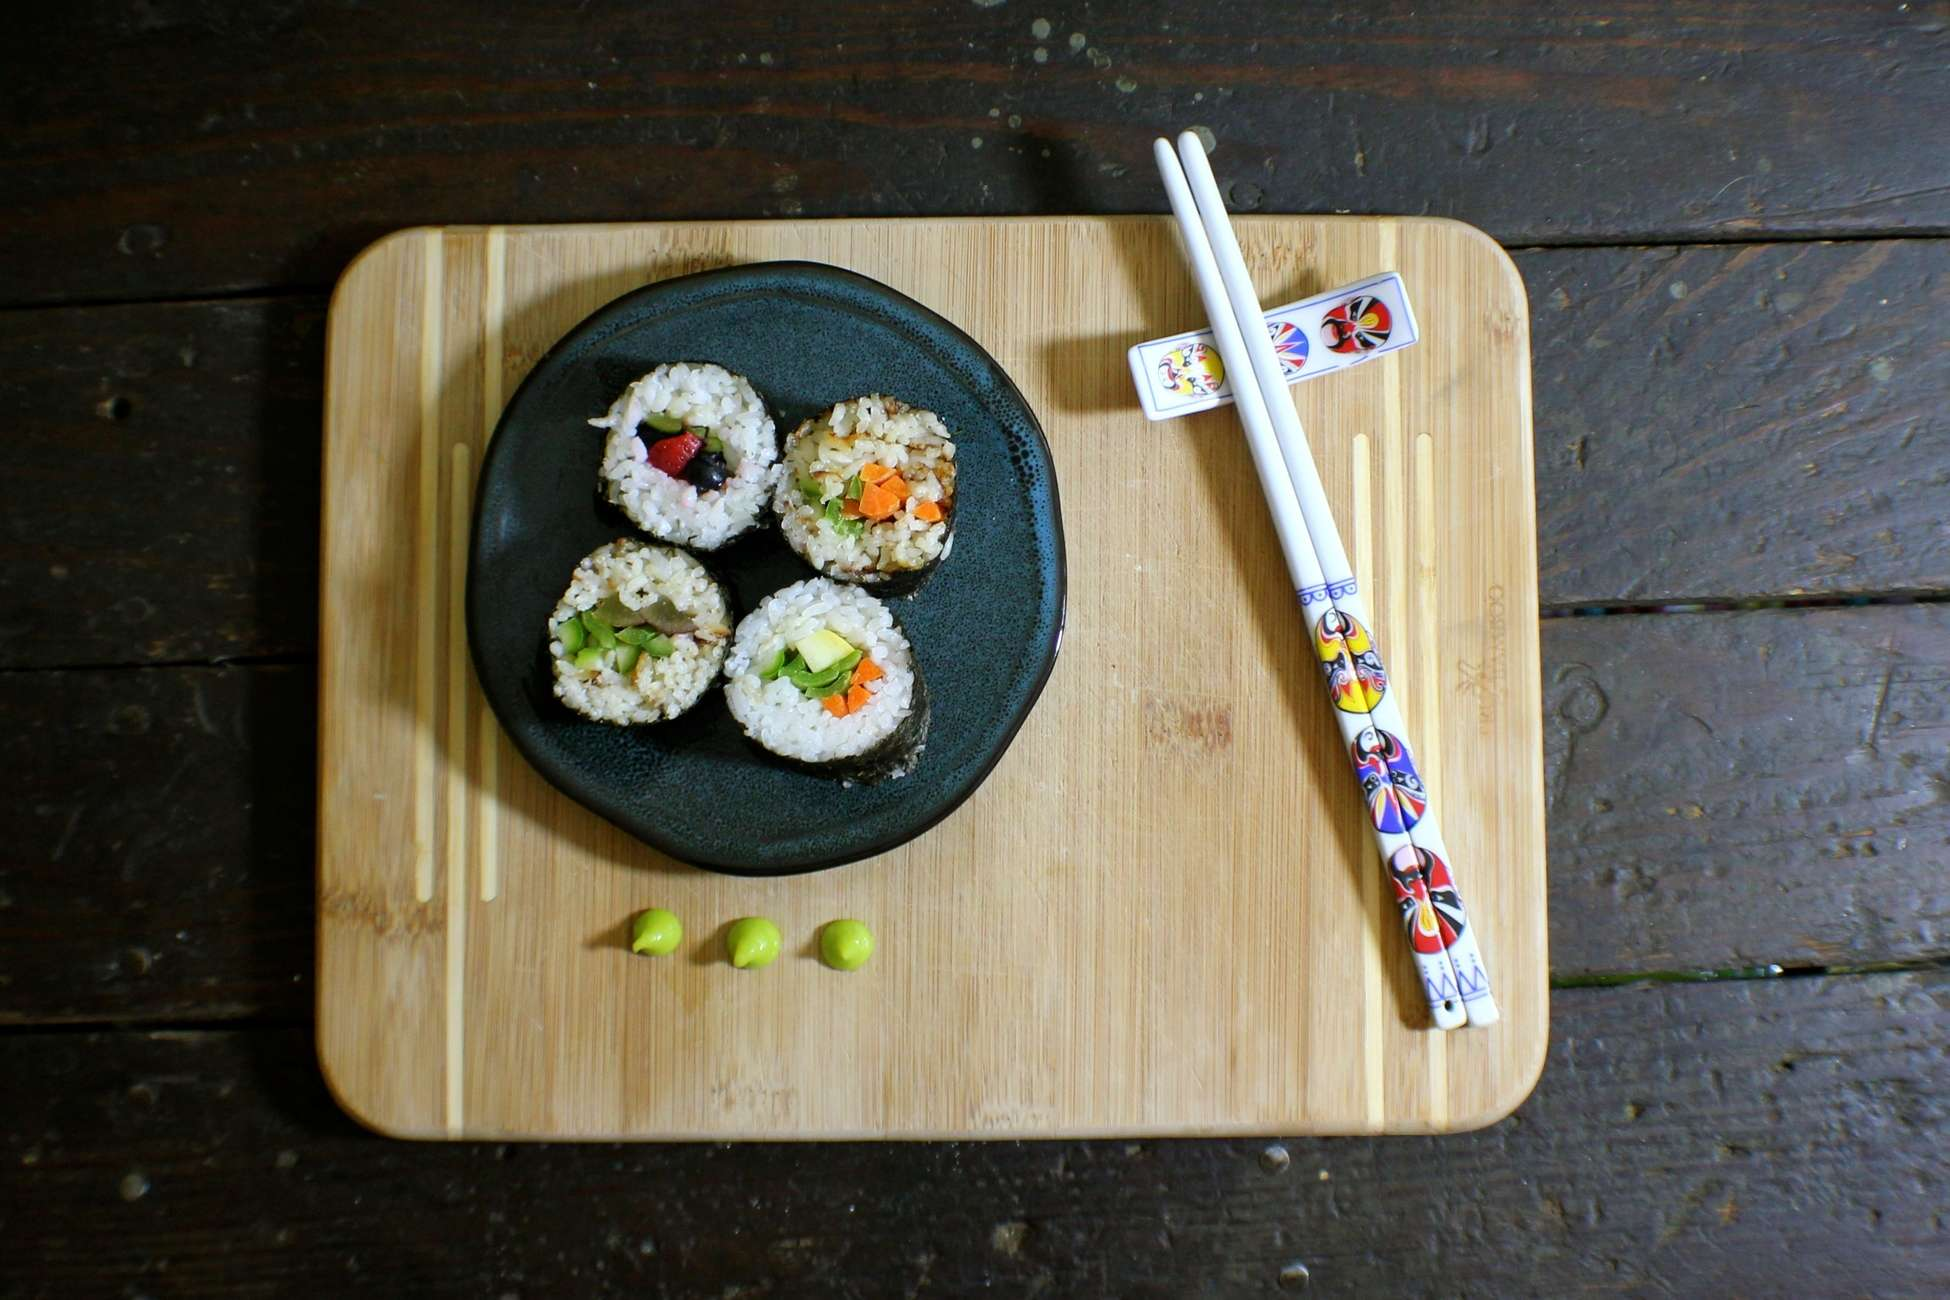 Make Your Own Sushi at Home